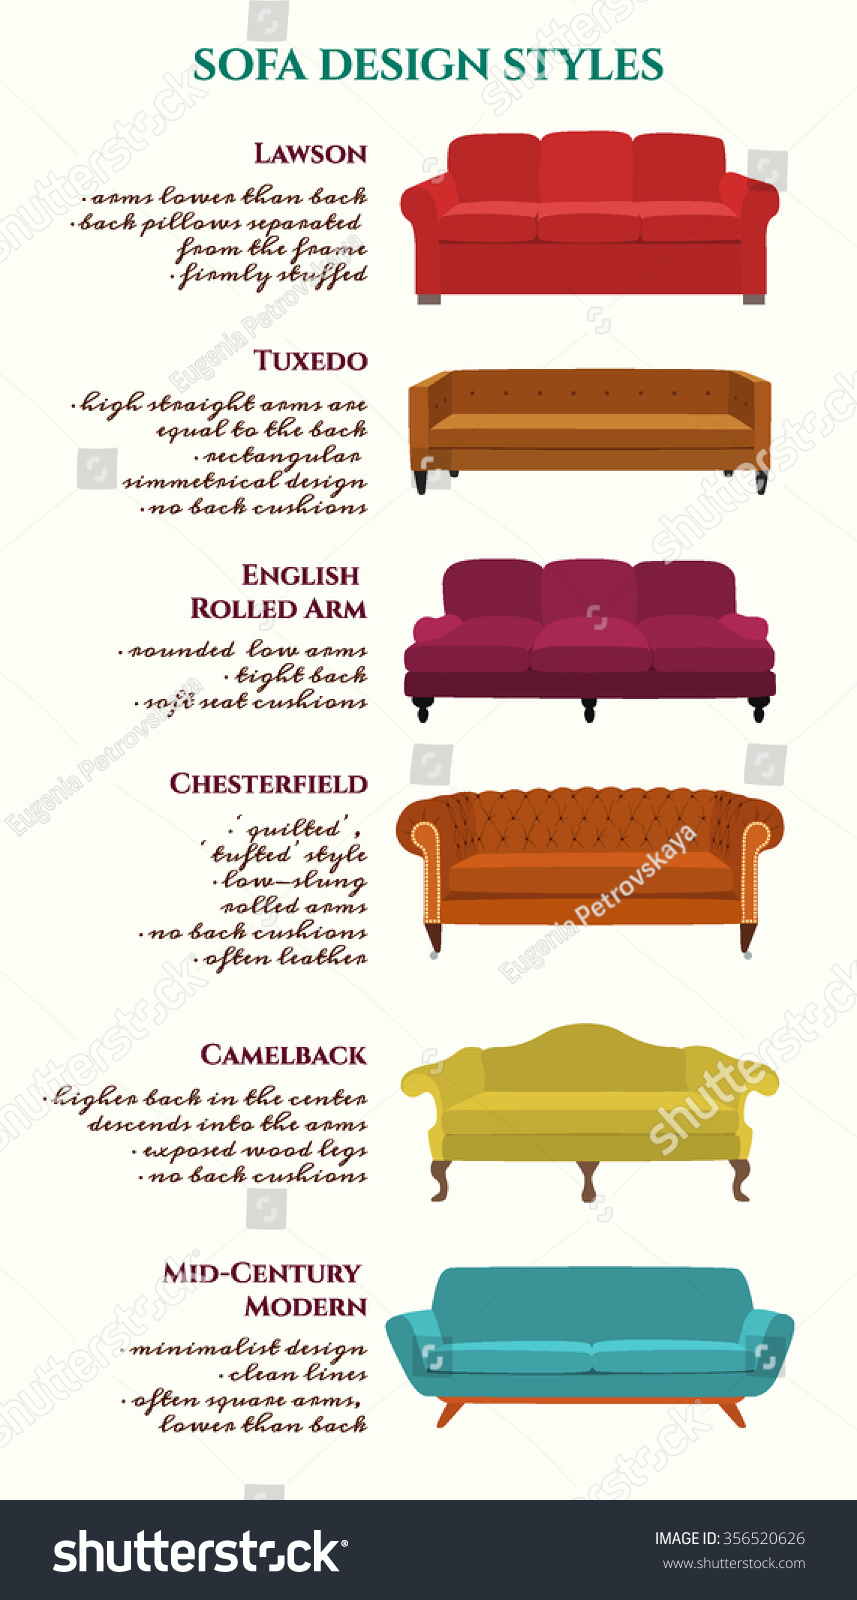 Vector Infographic Sofa Design Styles Visual Stock Vector - Types of sofa